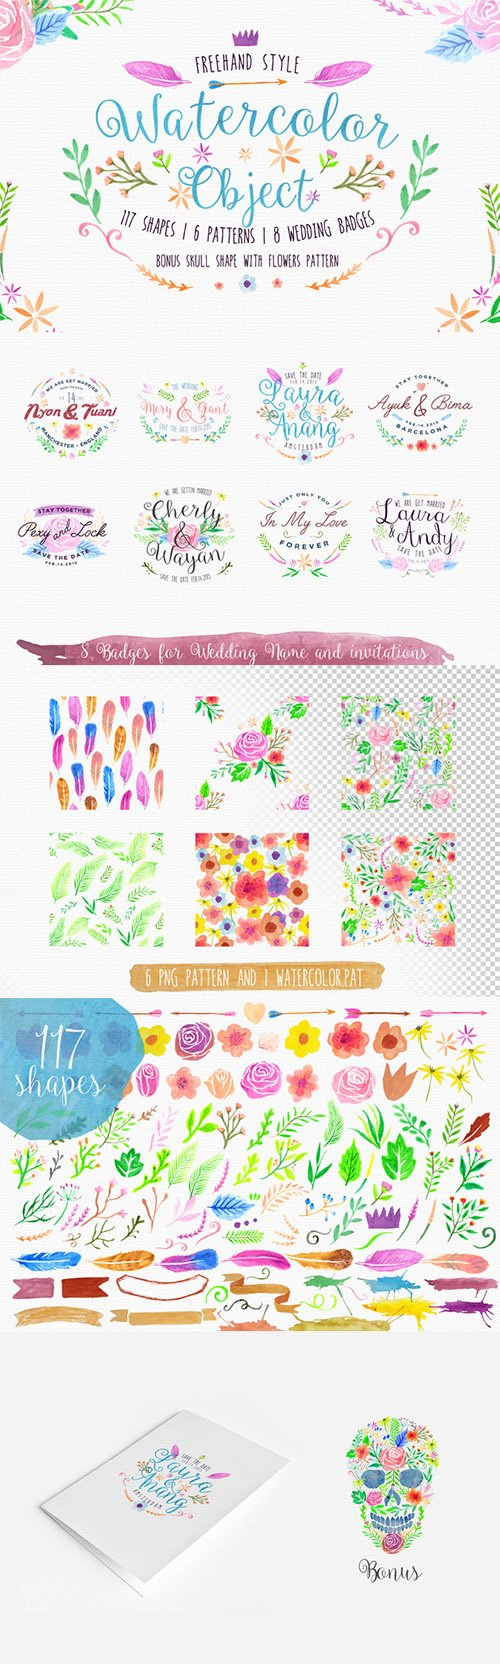 Freehand Watercolor Style Objects - Creativemarket 198368